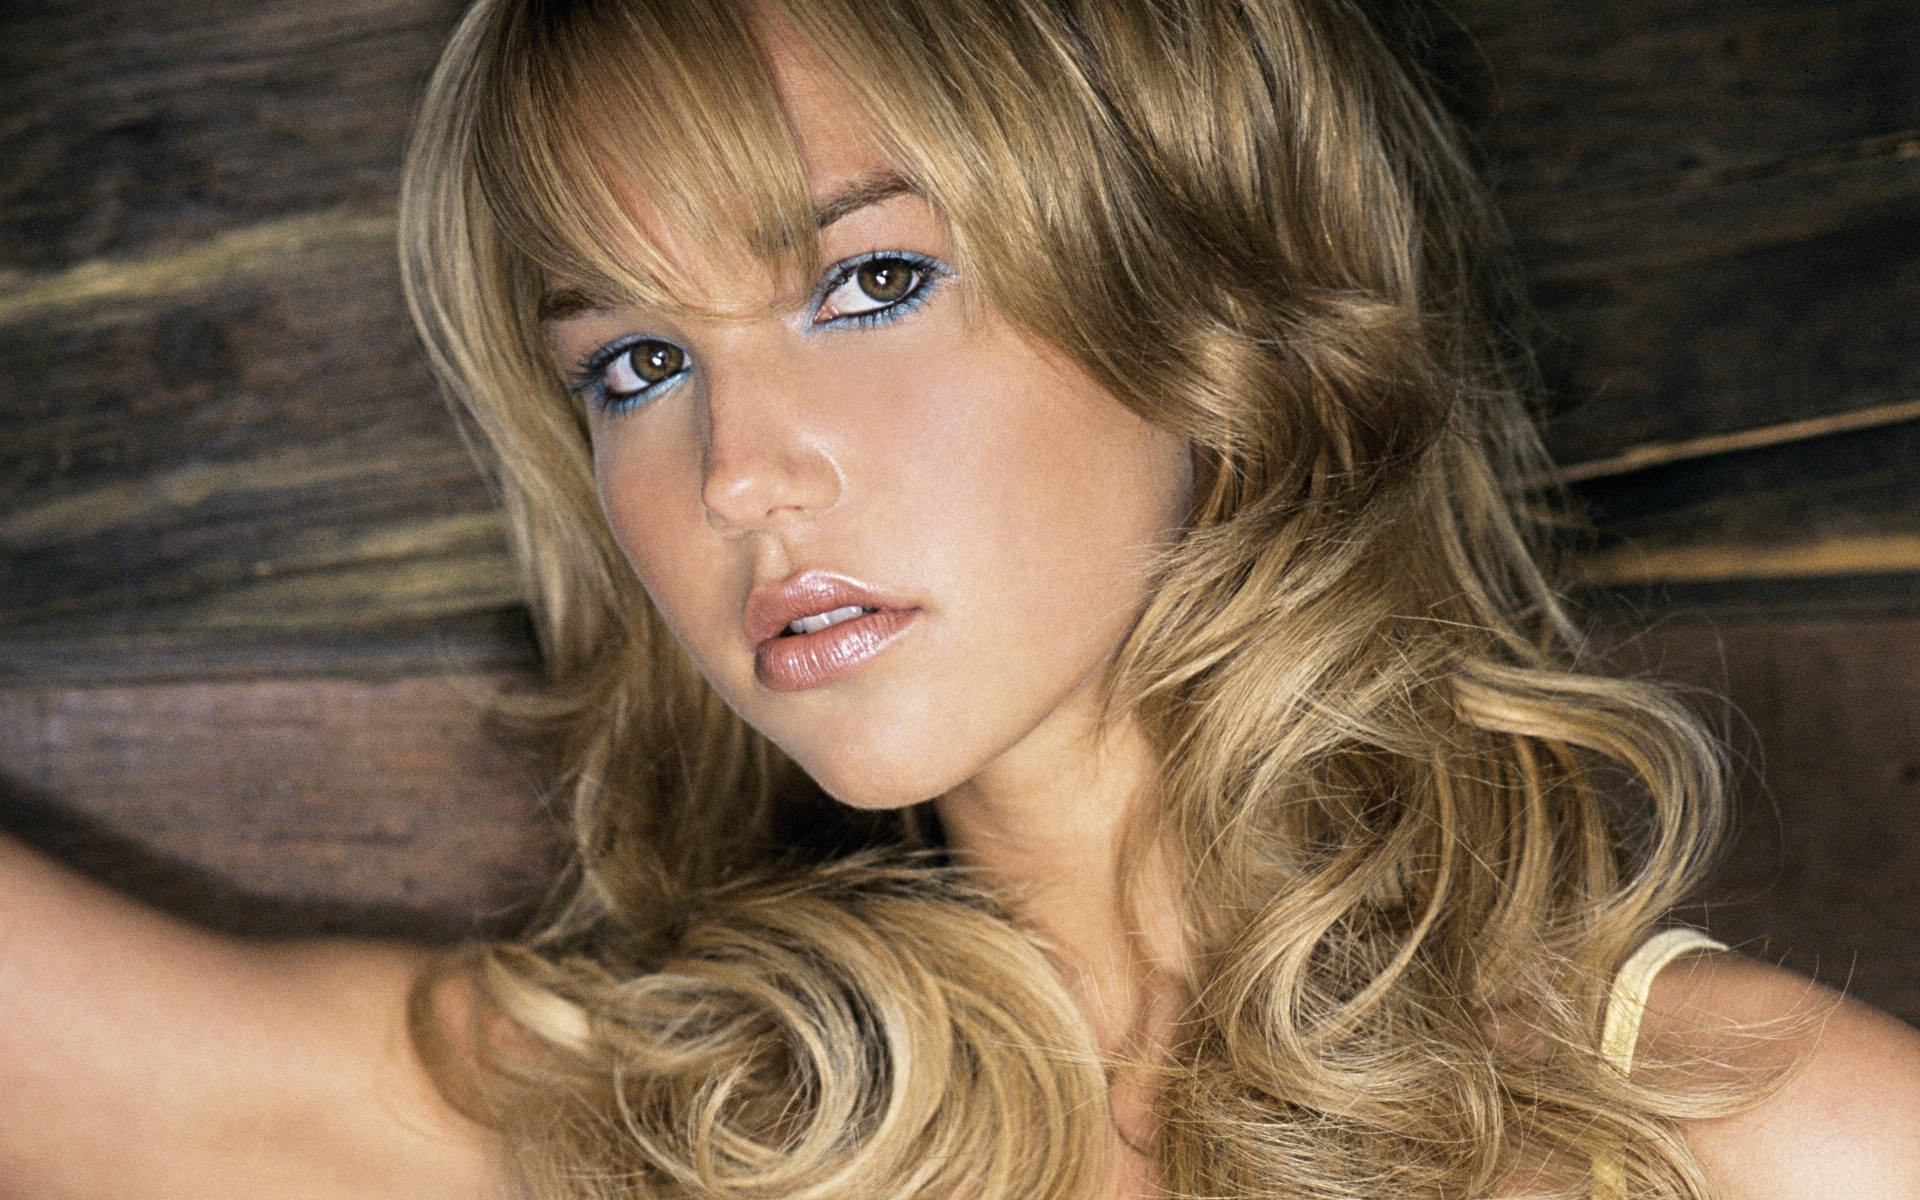 free-arielle-kebbel-wallpaper-22225-22782-hd-wallpapers.jpg